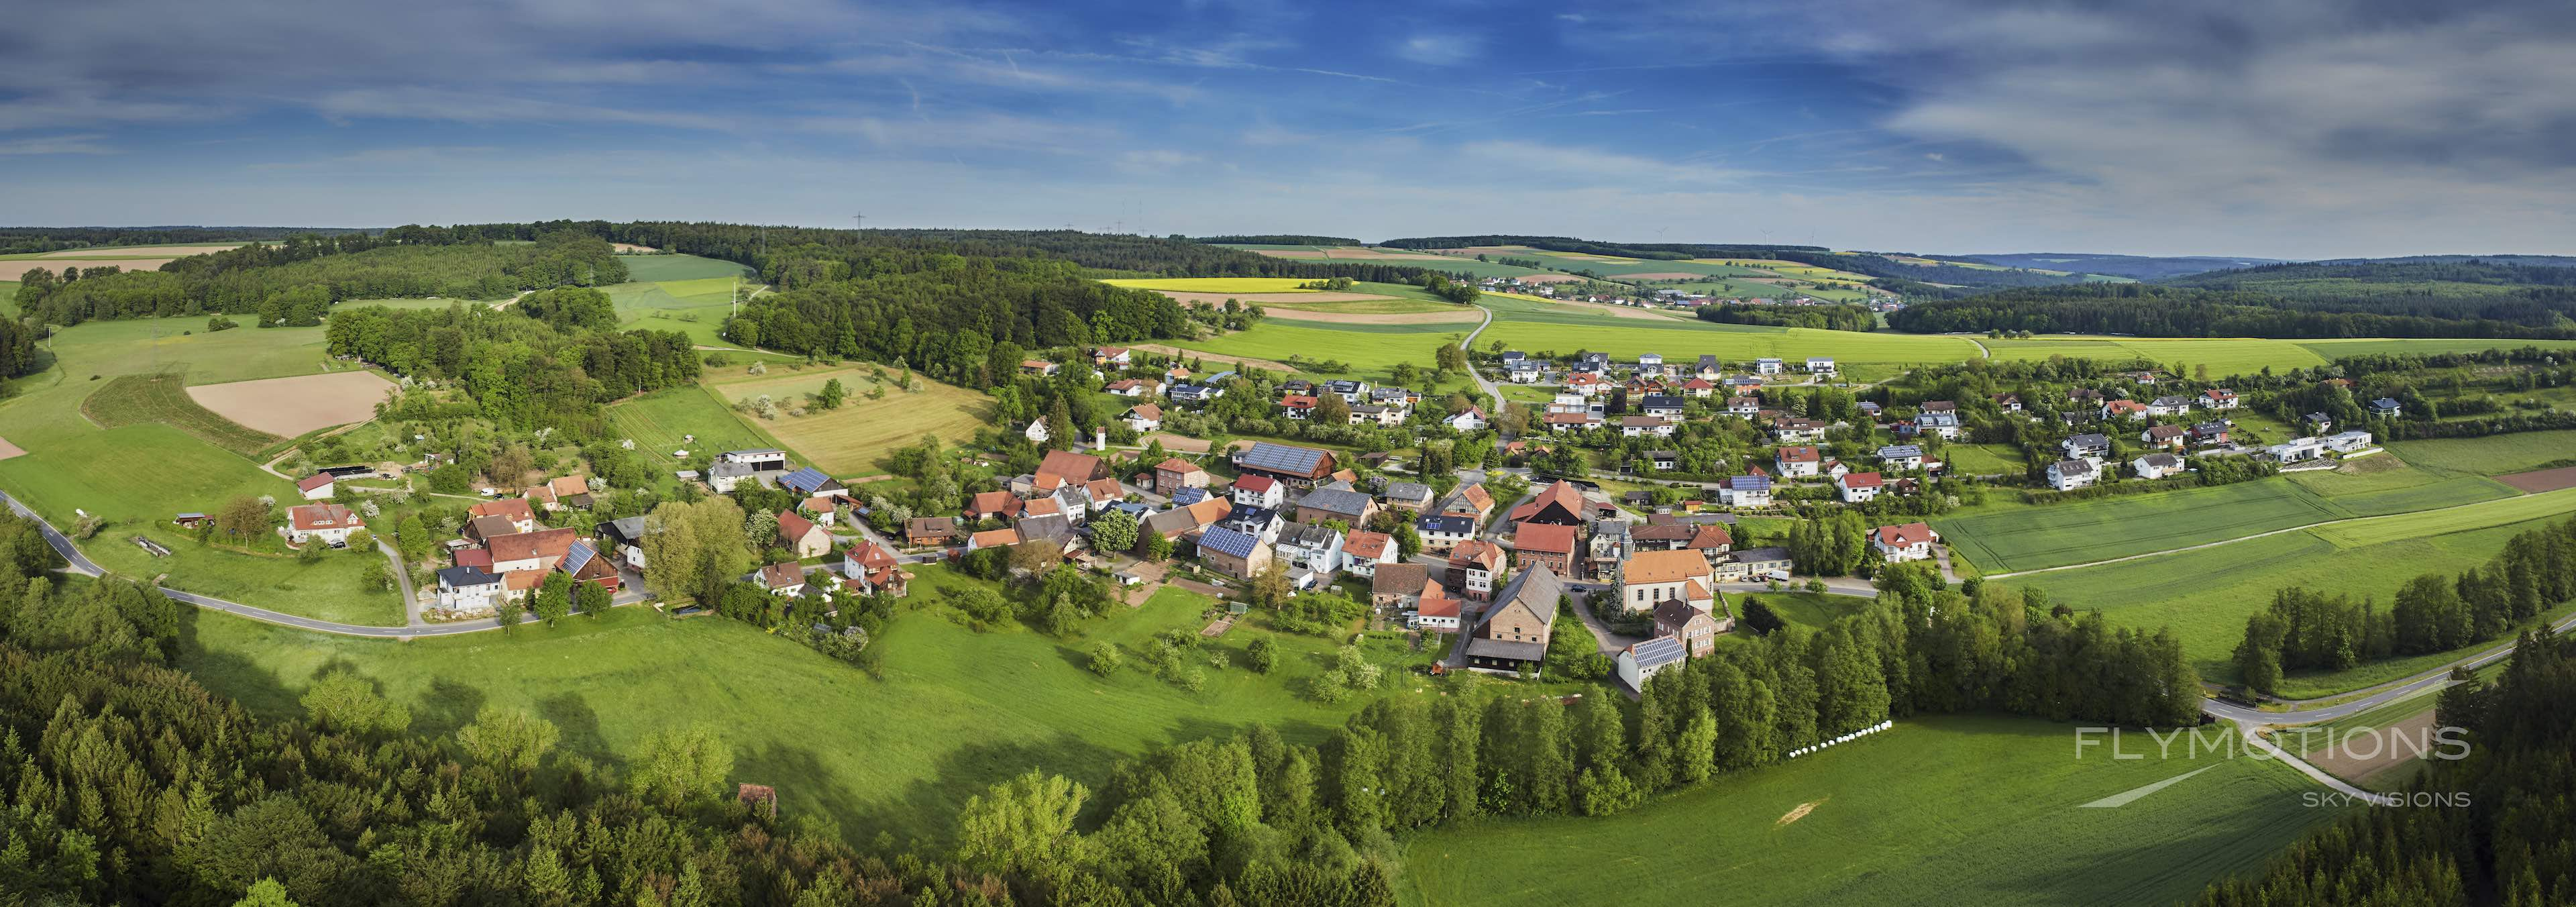 Buchen Odenwald after sunrise. Panoramic view. Drone.